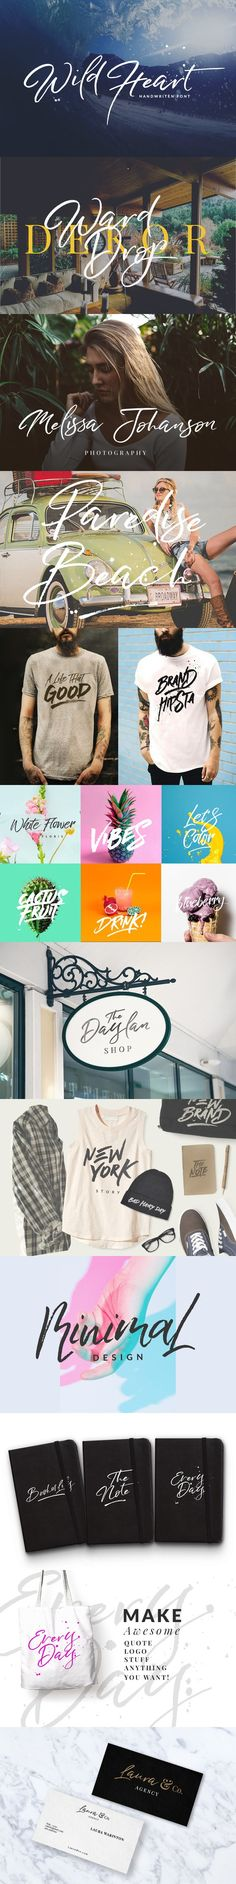 Wild Heart - Brush Font Set 40% OFF. Script Fonts. $15.00